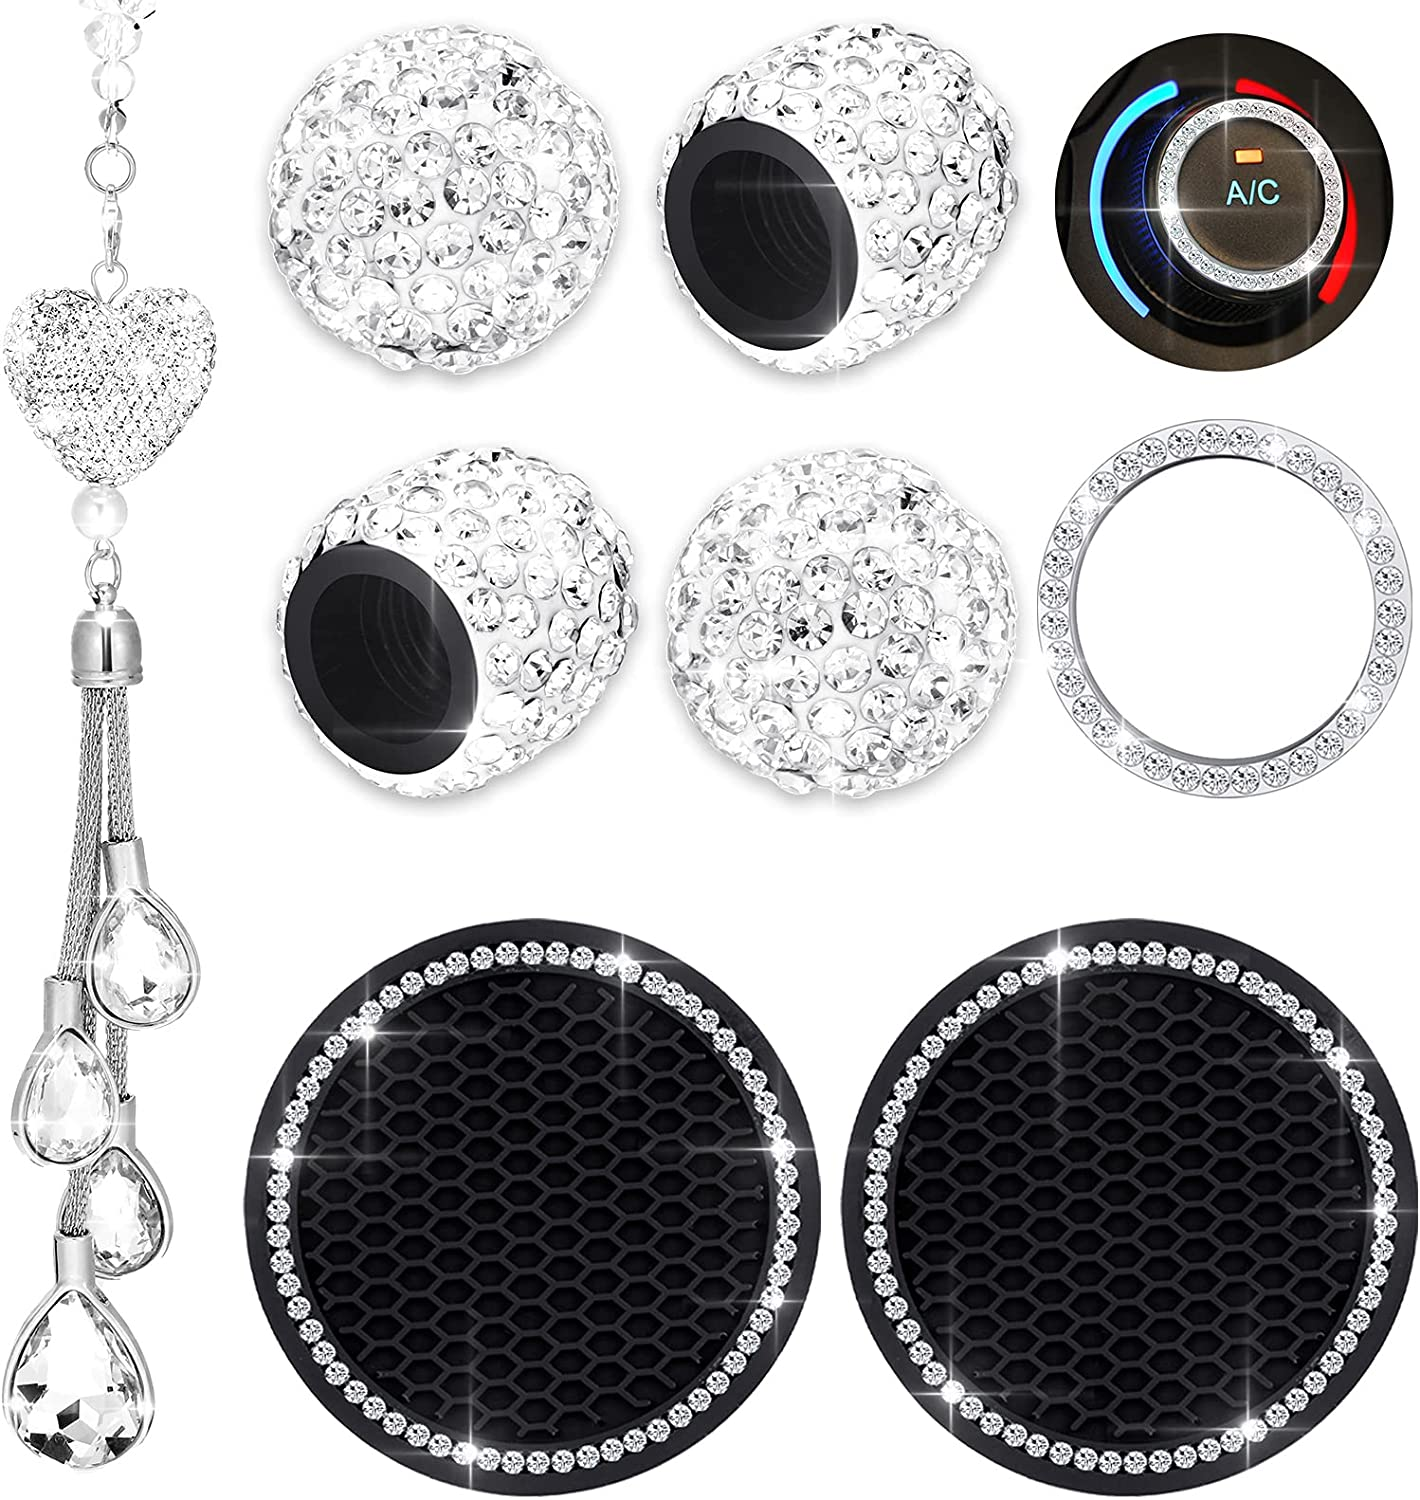 8 Pieces Bling Car Accessories, Includes Bling White Heart Diamond Car Accessories Rhinestone Car Coasters and Bling Sticker Emblem Rings Start Button Rings Tire Valve Stem Caps for Men Women